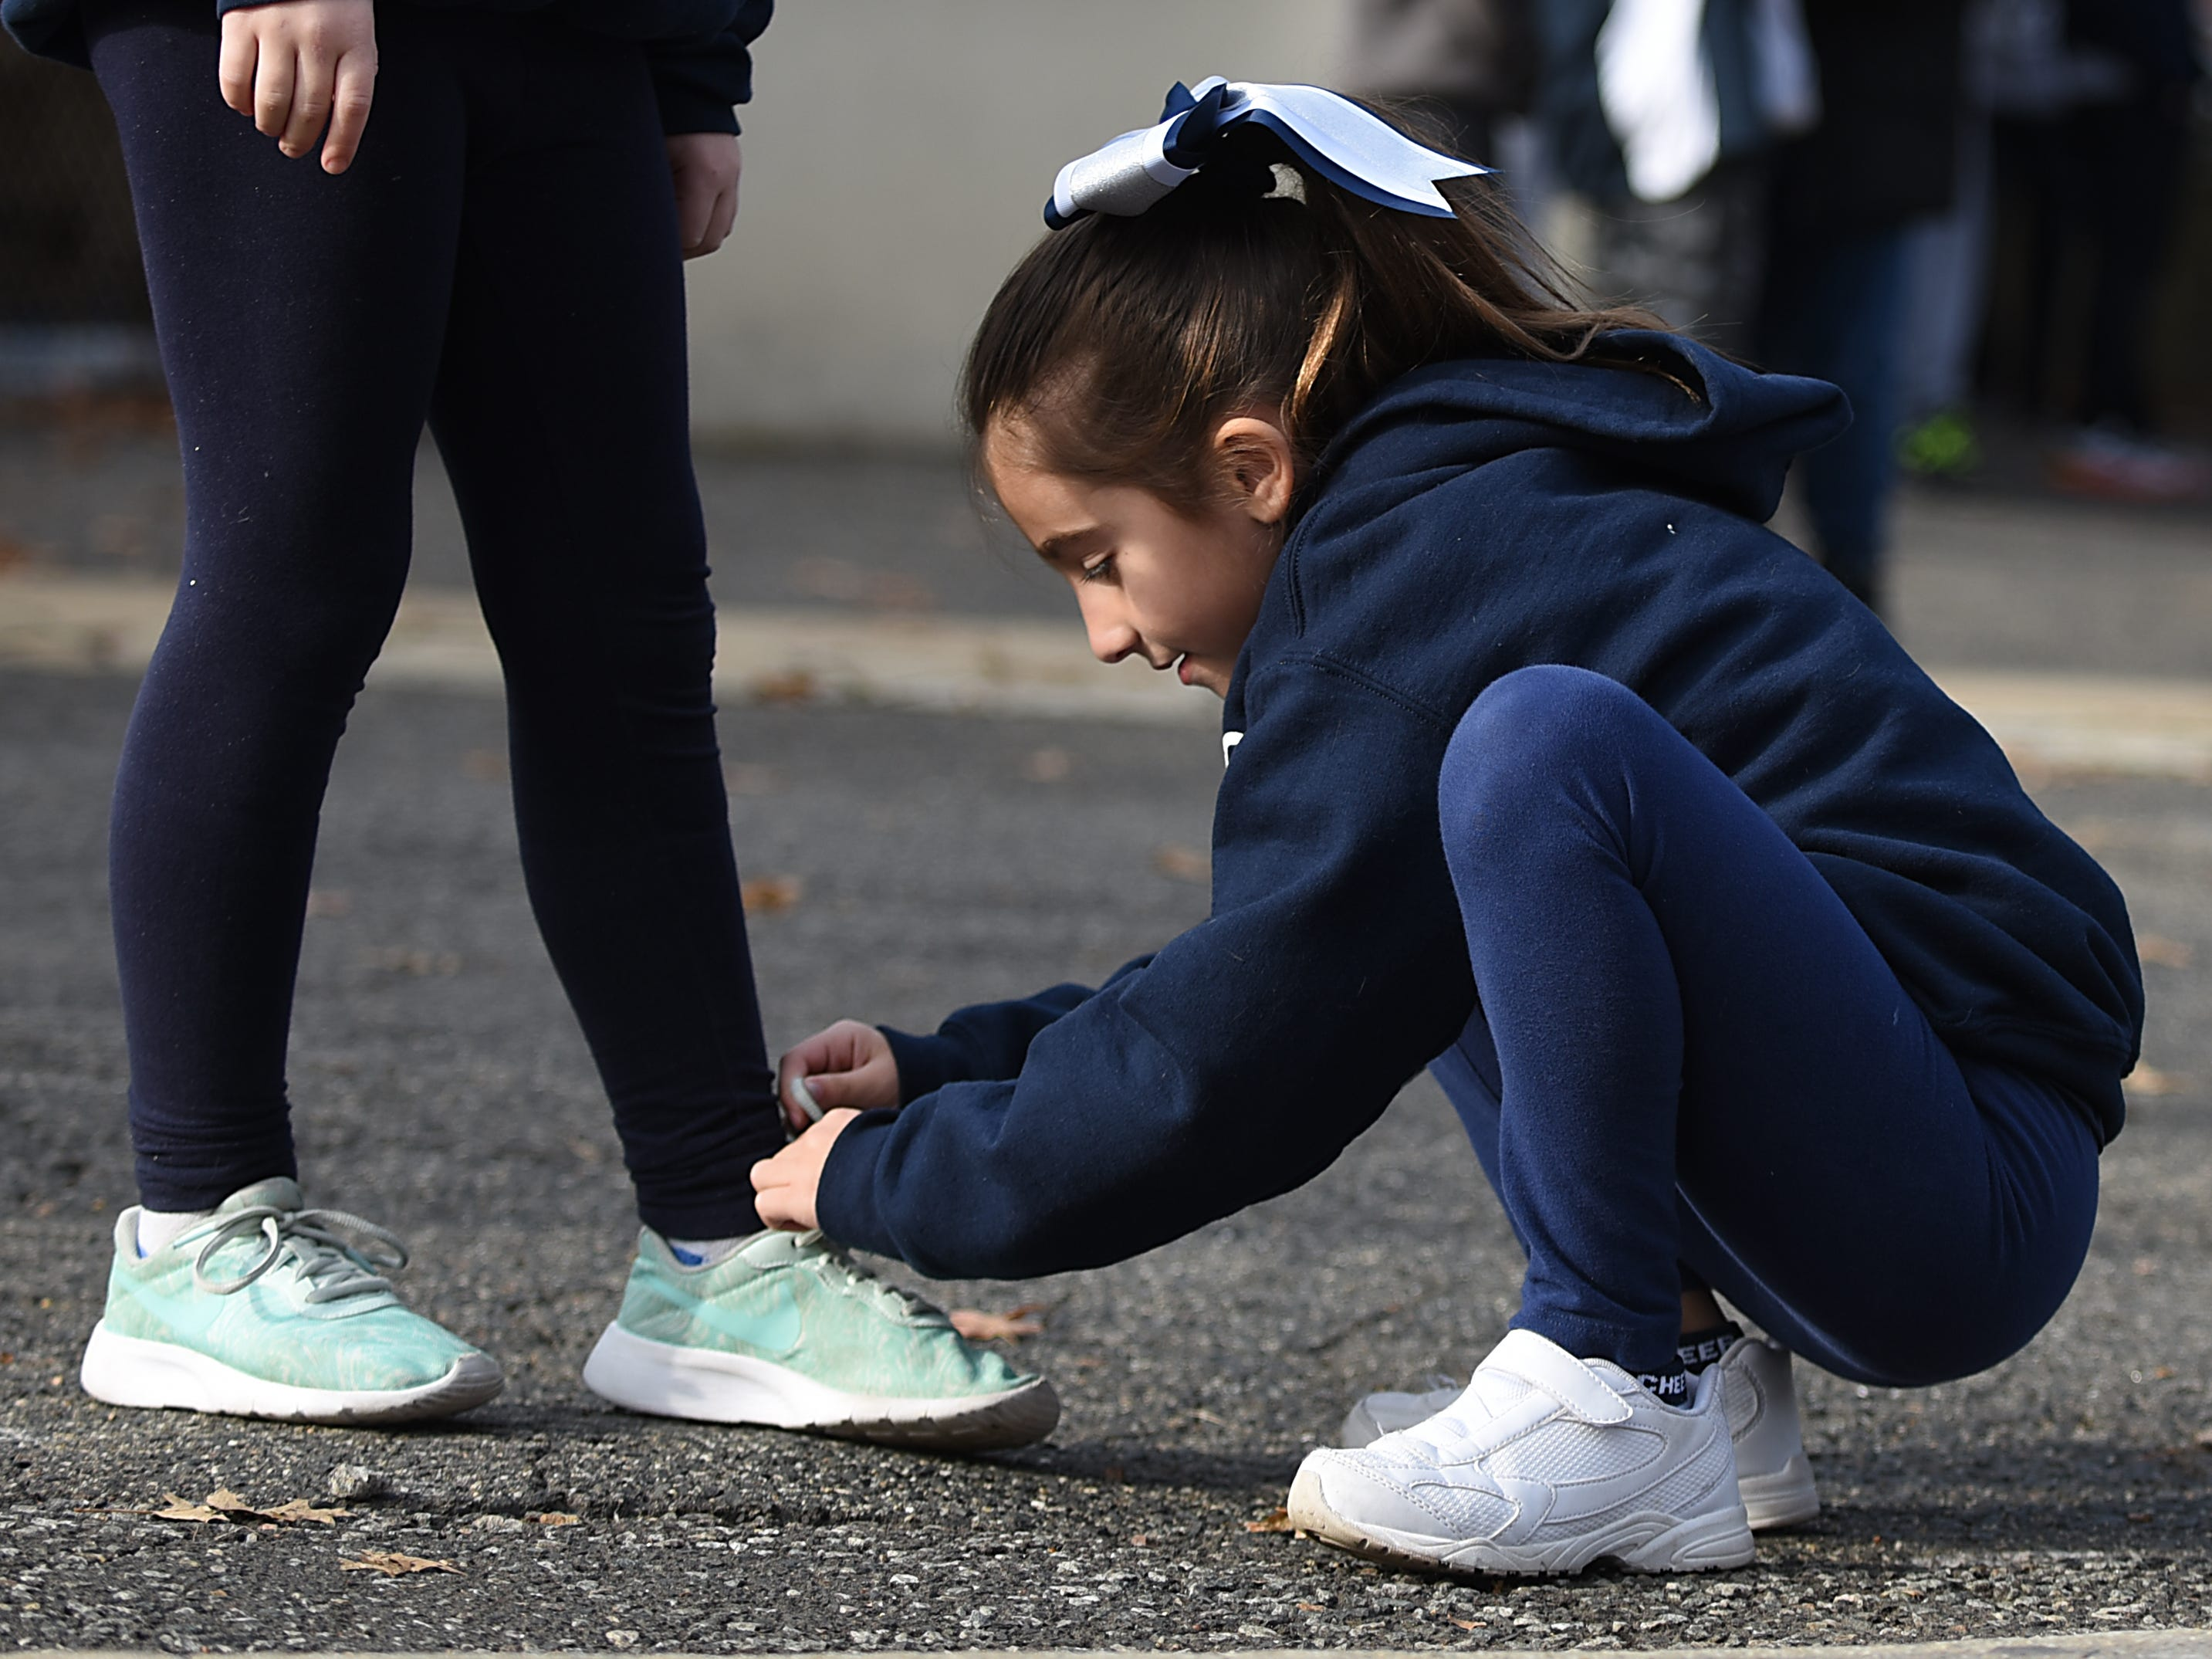 Giuliana Centrello, eight years old, helps her fellow cheerleader tie her shoe prior to the start of the Rutherford Football parade in Rutherford on Saturday December 1, 2018.